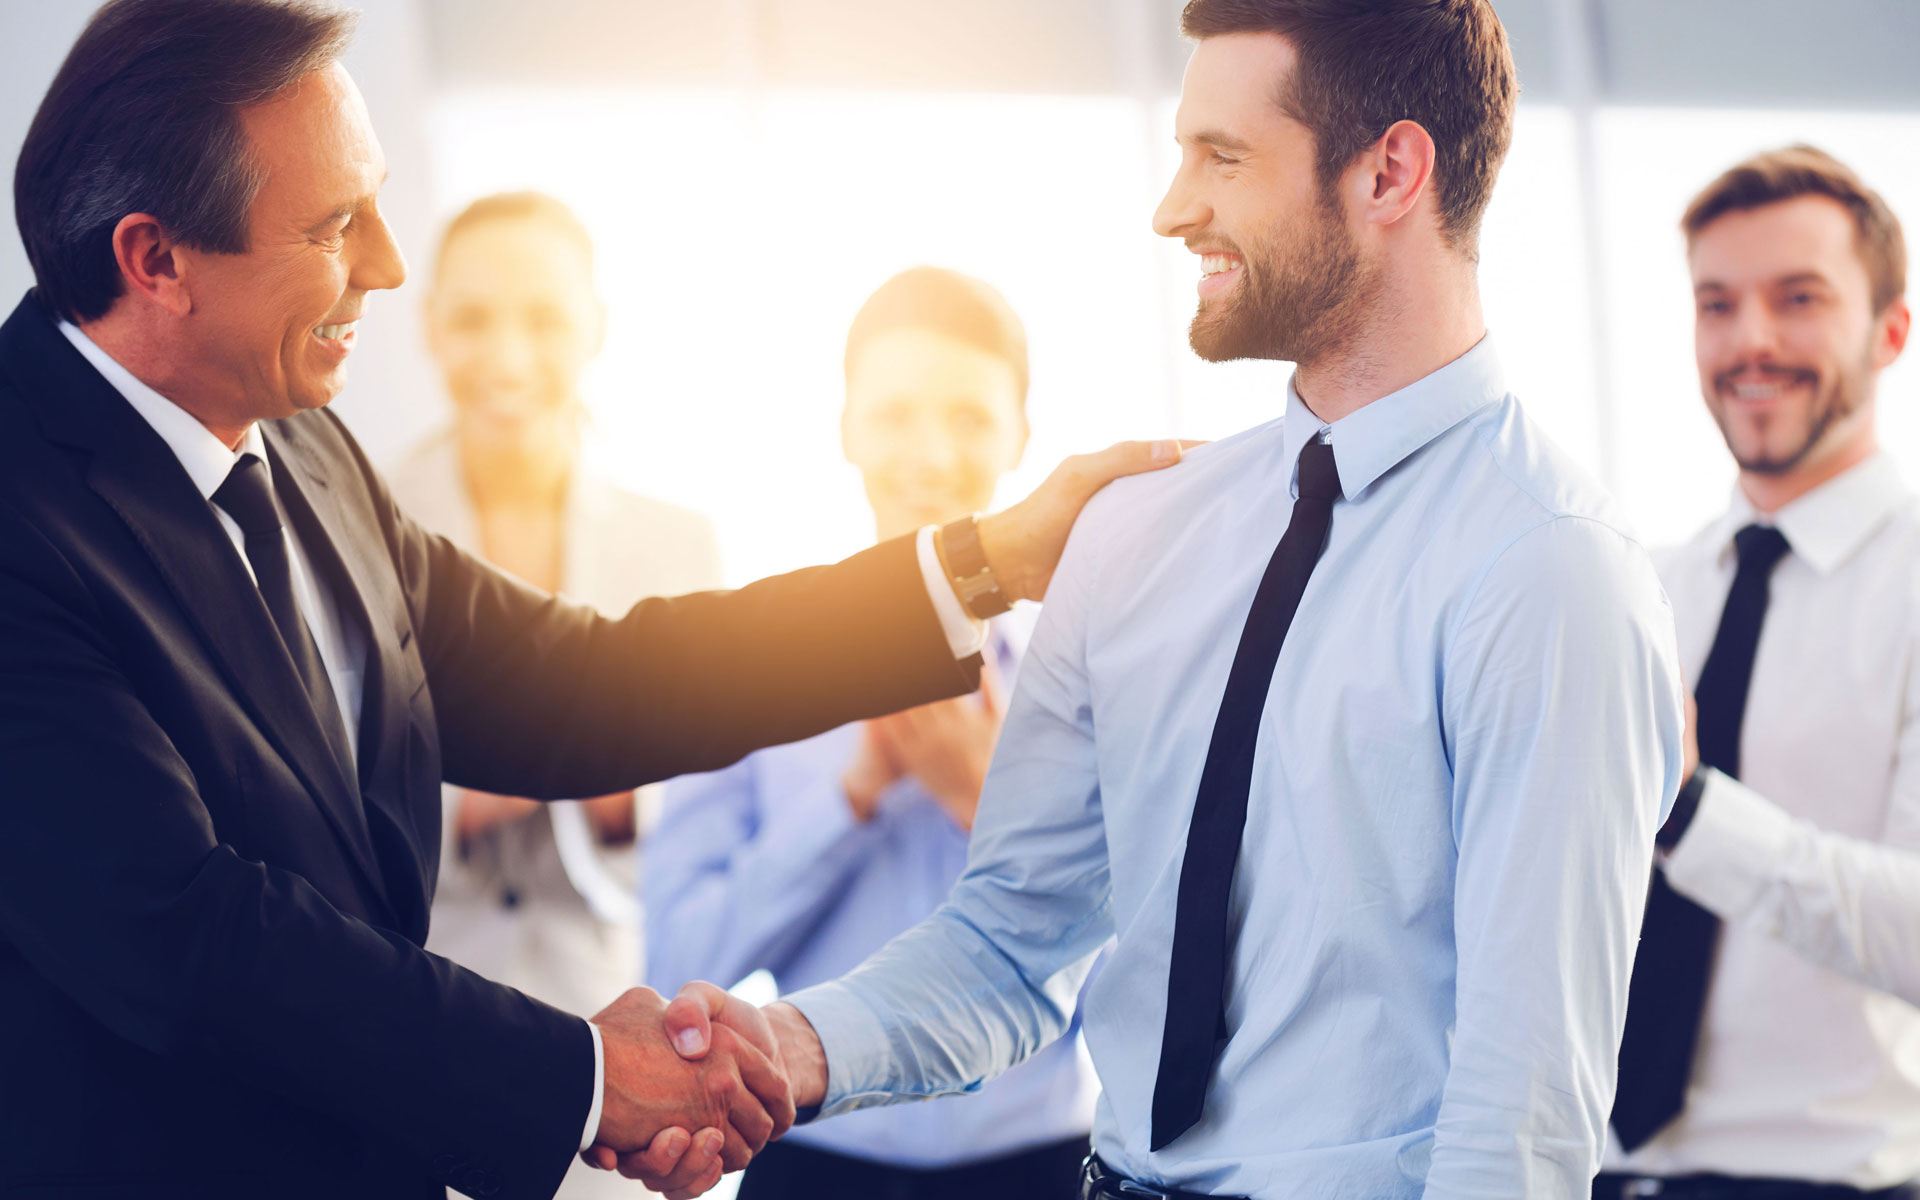 8 Step Checklist For Hiring New Employees